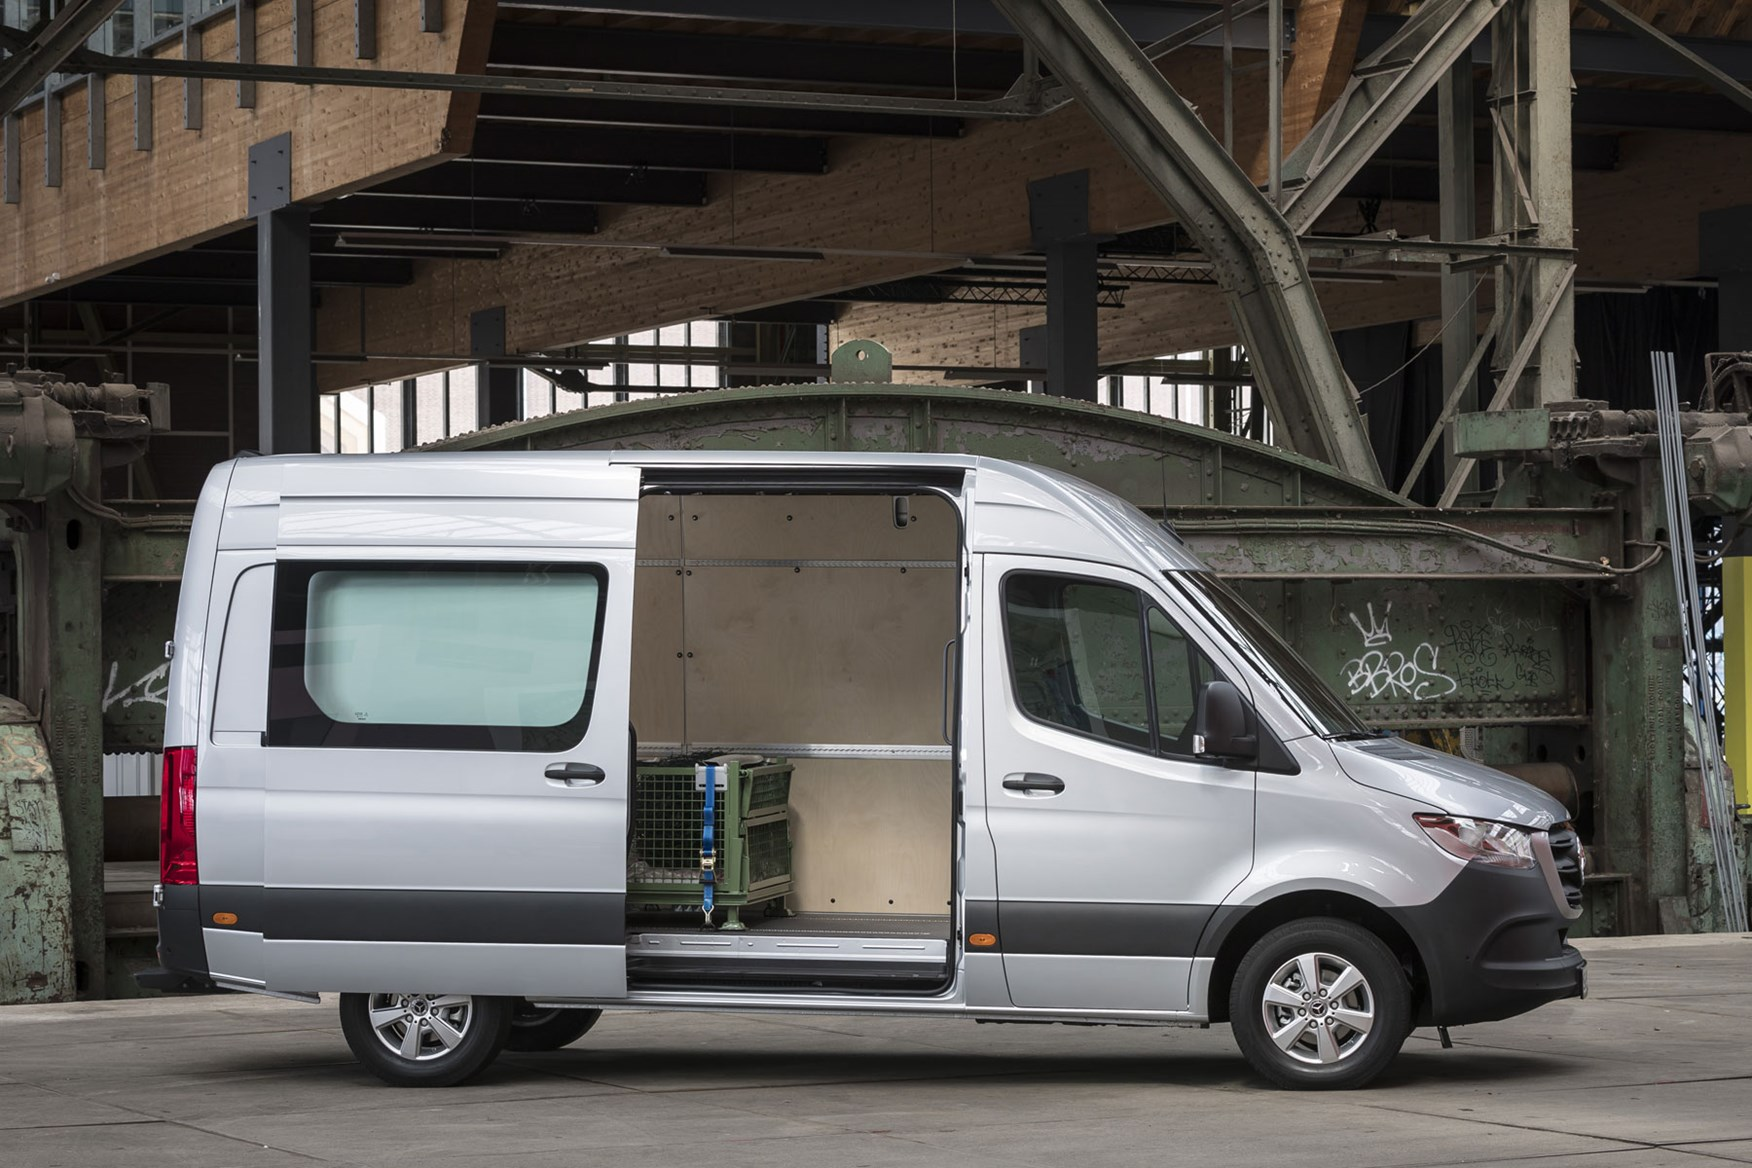 mercedes benz sprinter van dimensions 2018 on capacity payload volume towing parkers. Black Bedroom Furniture Sets. Home Design Ideas